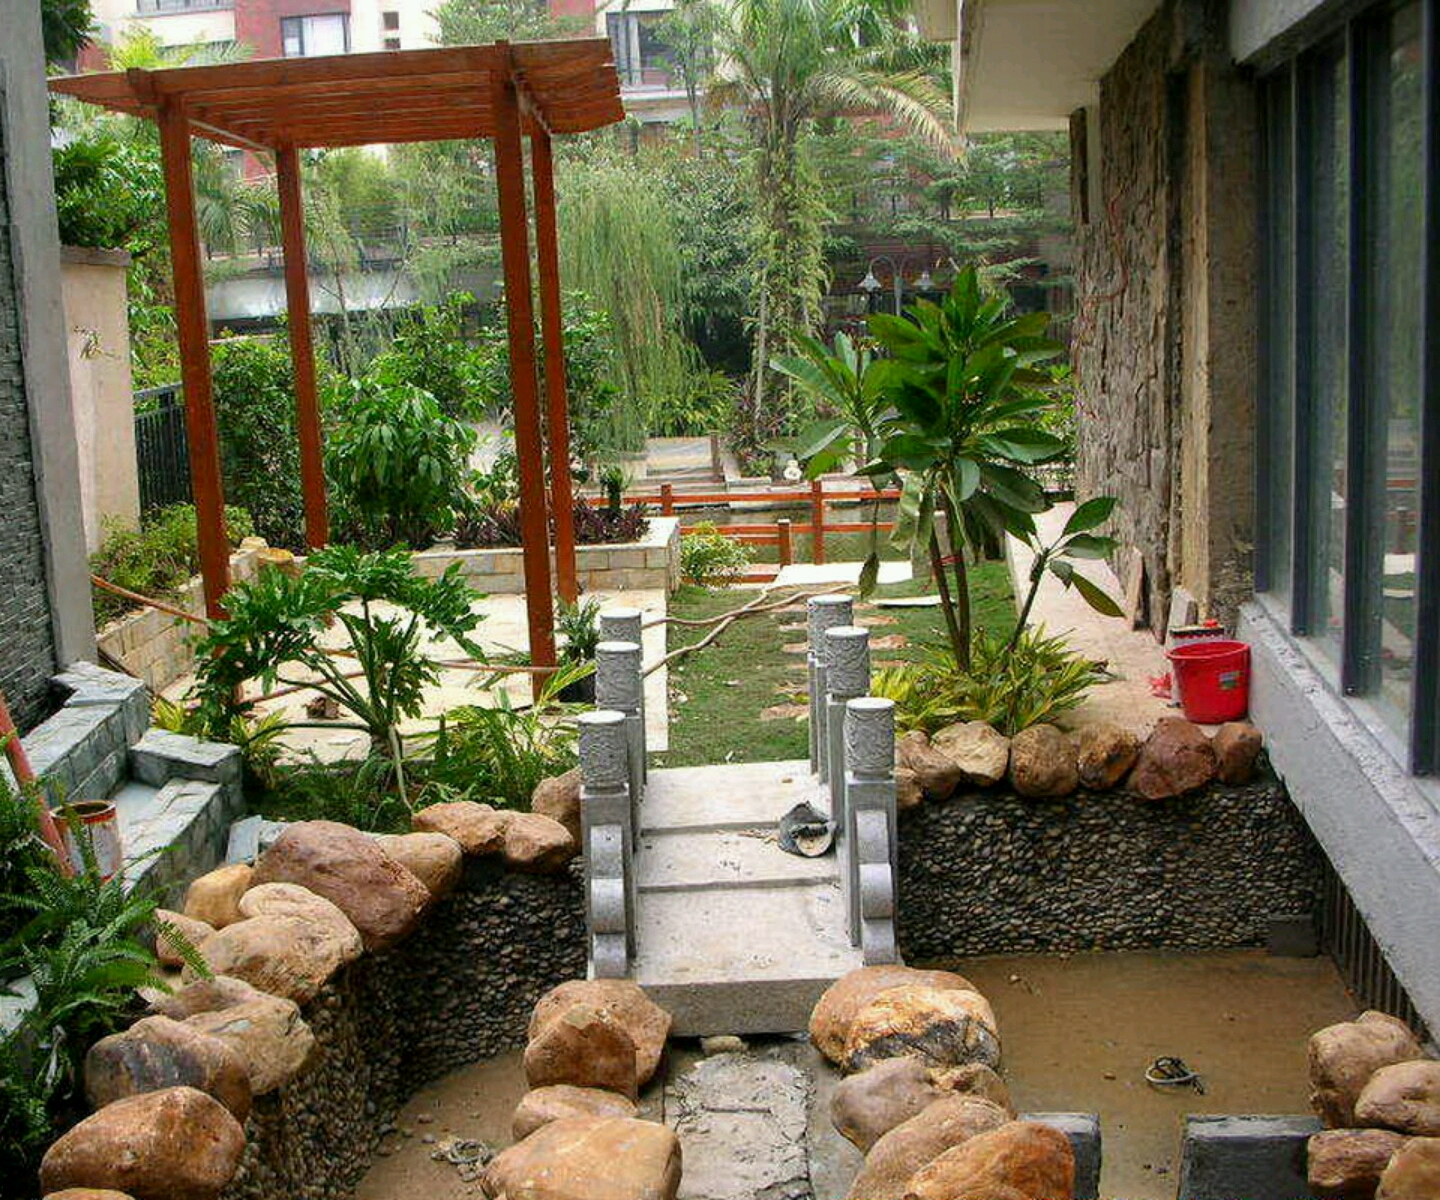 New home designs latest beautiful home gardens designs for Garden design ideas photos